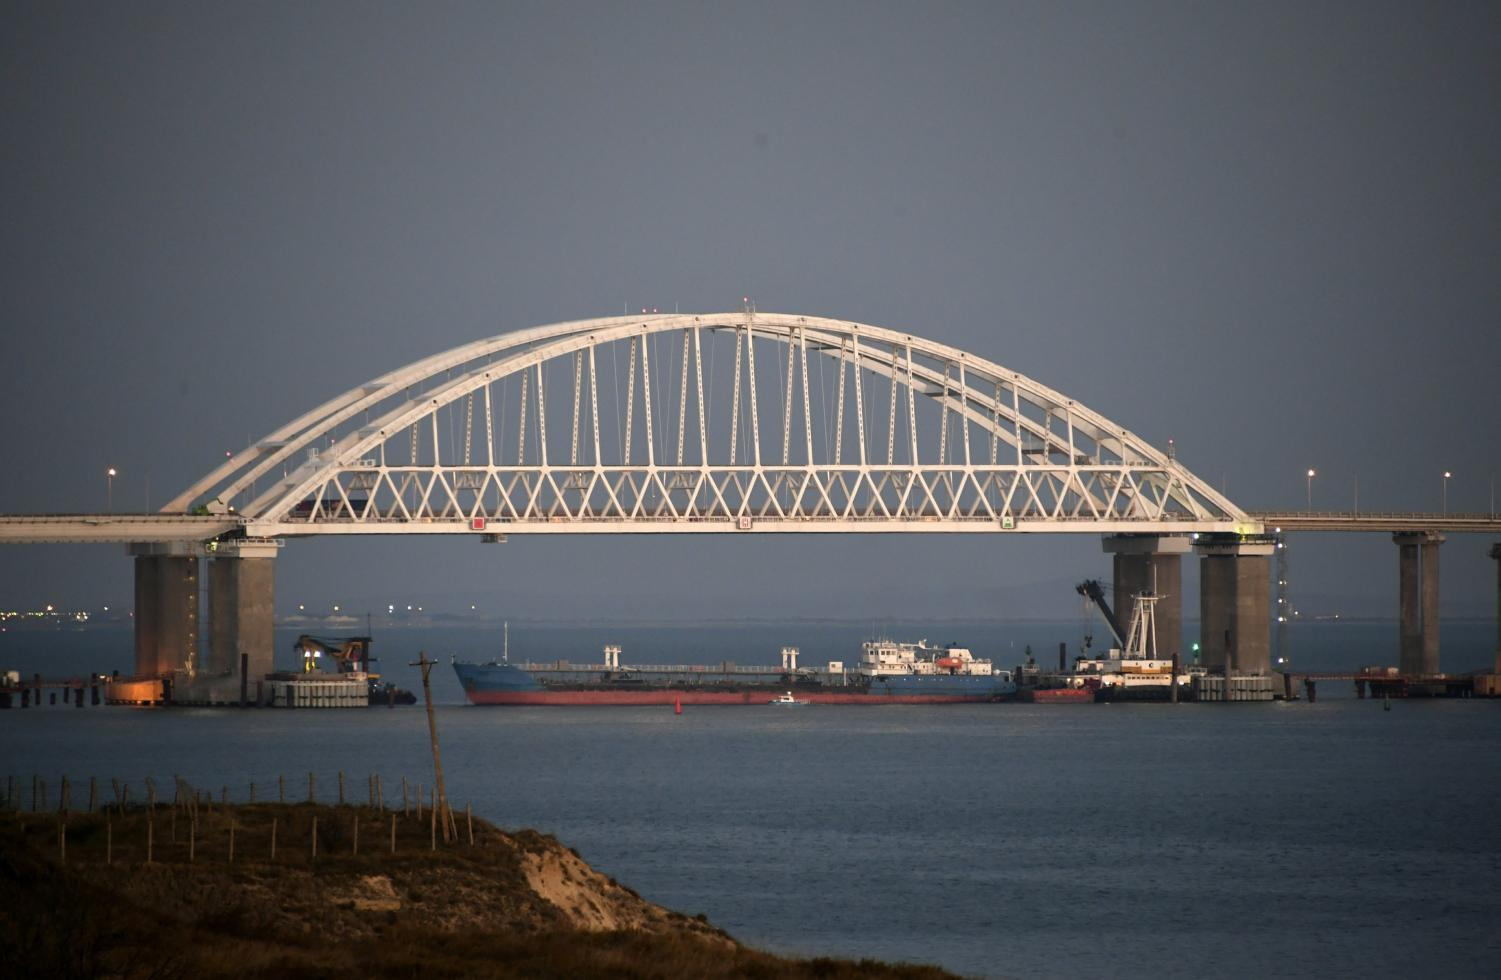 The Kerch Strait has been blocked by a Russian cargo vessel, preventing any sea travel through the strategic waterway.